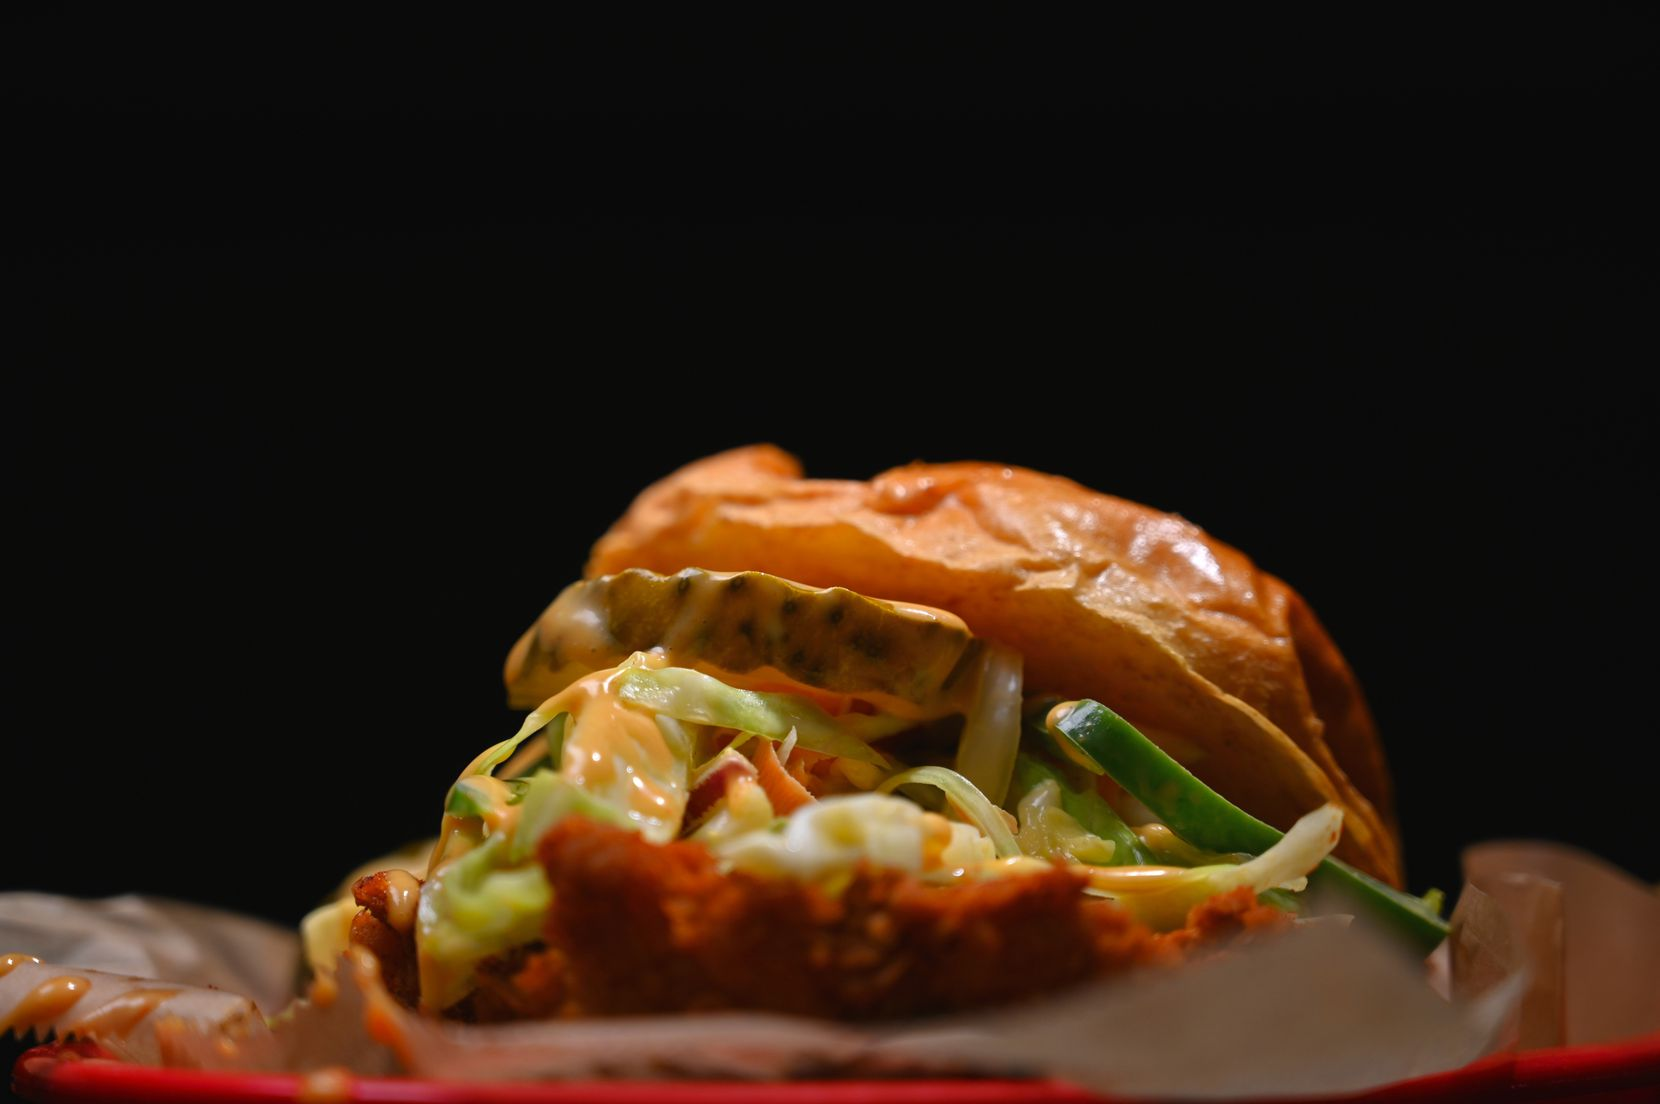 S&J's Hot Chick is a new Nashville hot chicken restaurant expected to open in February or March 2021 in Northwest Dallas.